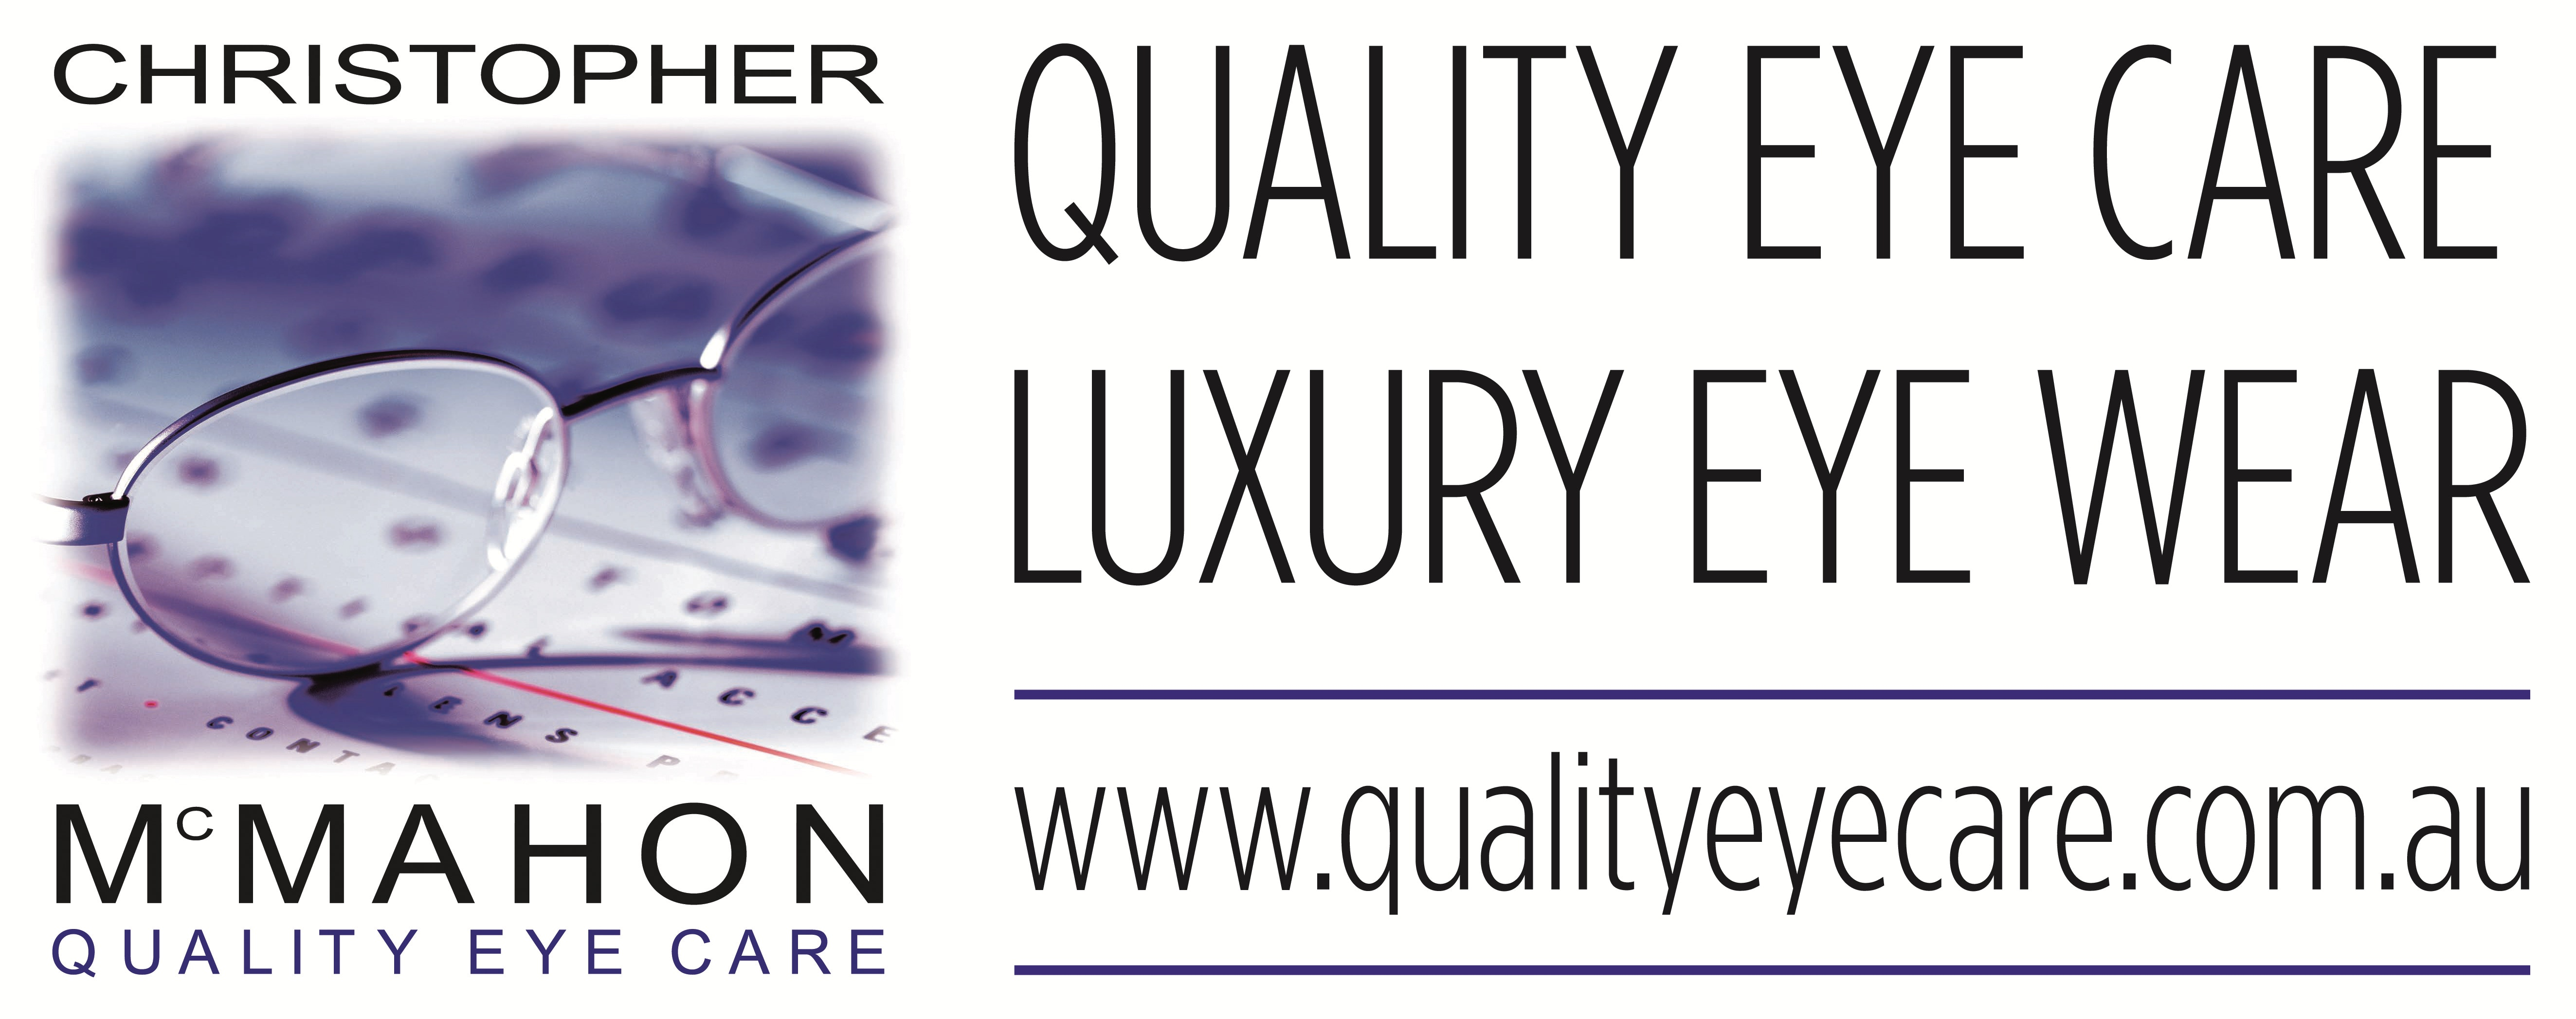 Christopher McMahon Quality Eye Care - Southport